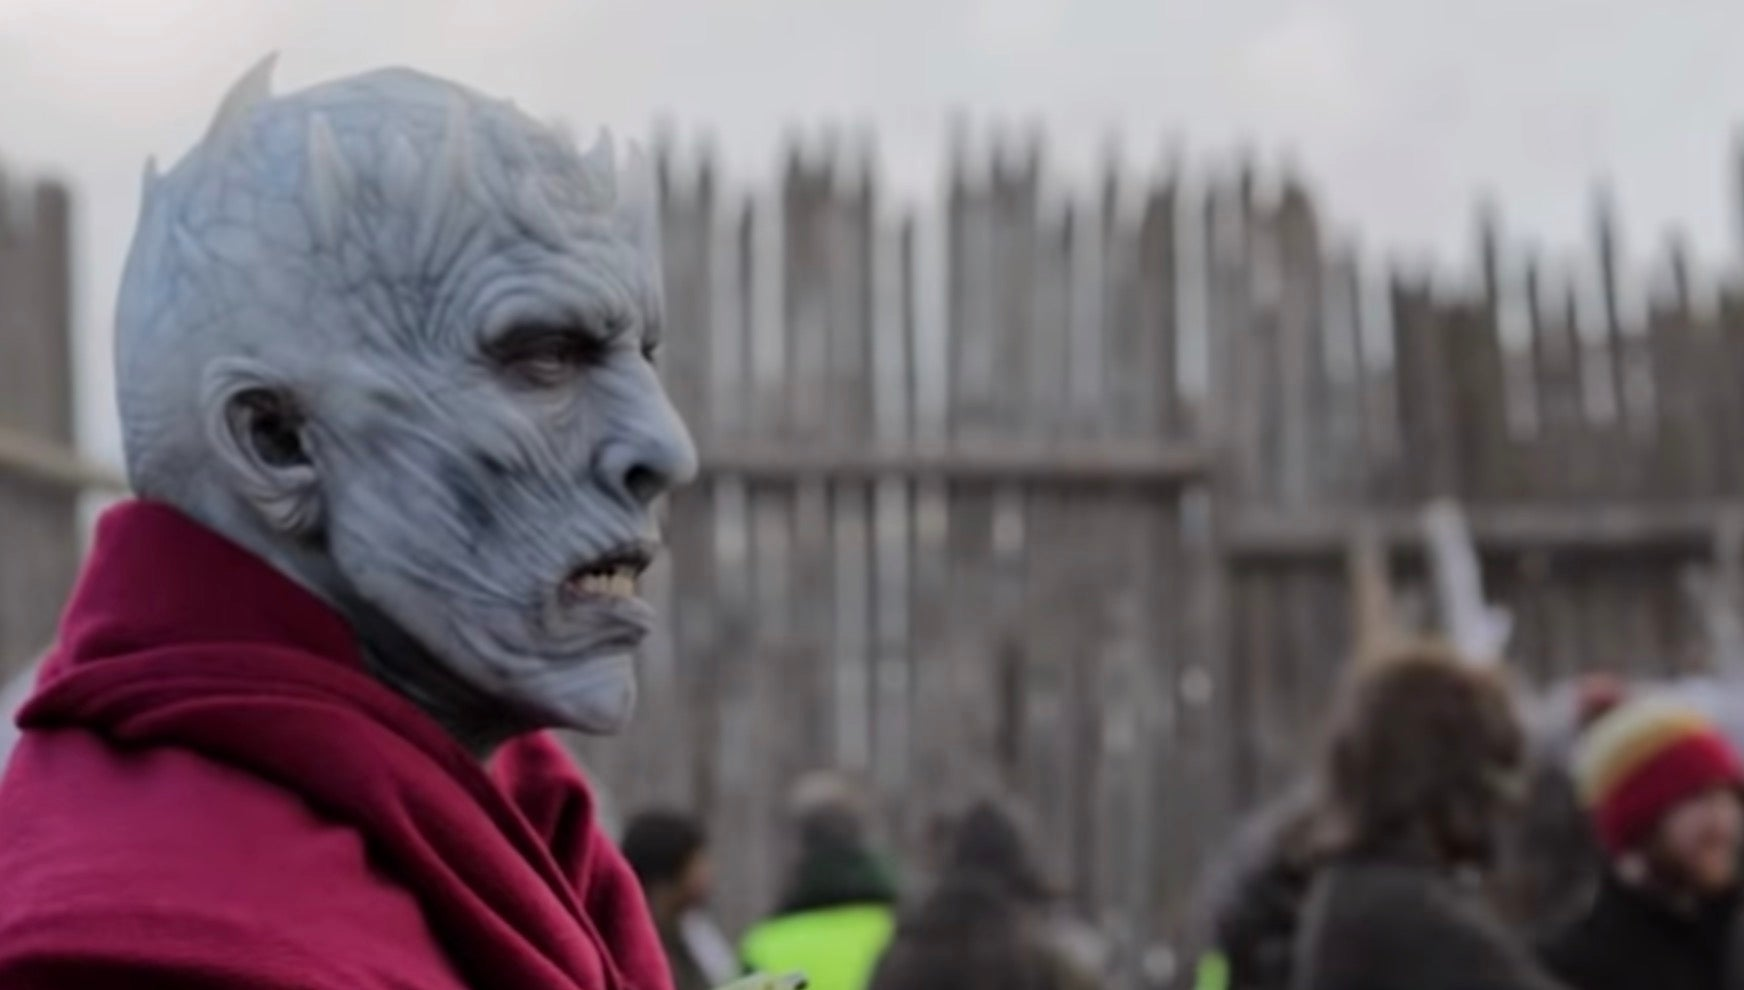 Game Of Thrones' Amazing Prosthetics Get A Well-Deserved Spotlight In This Video Tribute